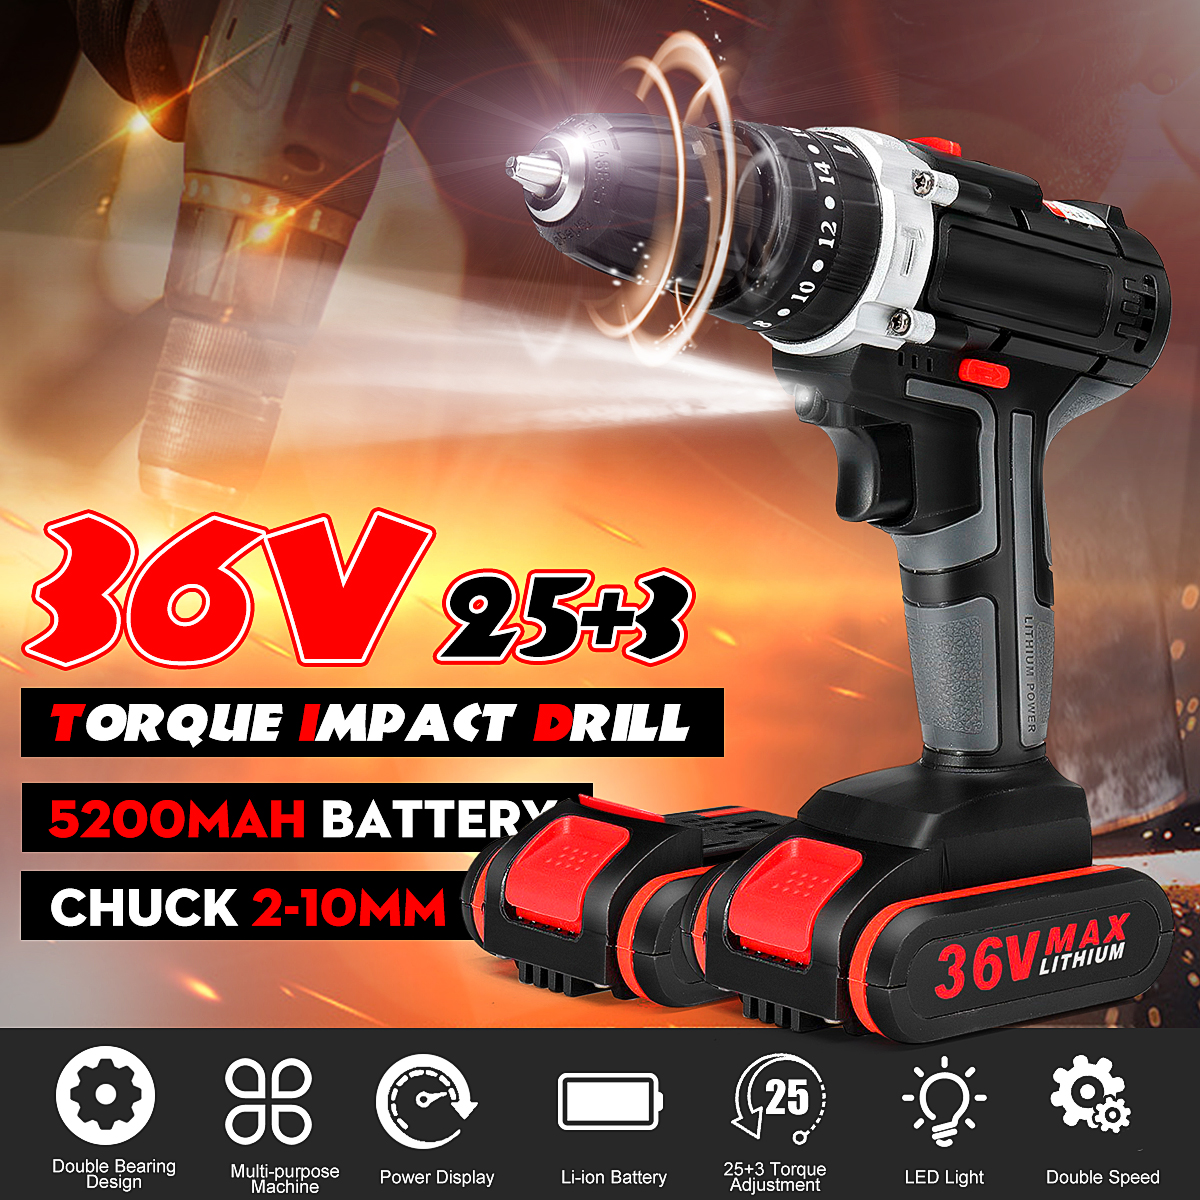 25+3 Torque 36V Cordless Electric Impact Drill Li-ion Battery Screwdriver LED Working Light DIY Home Hand Flat Drill Power Tools